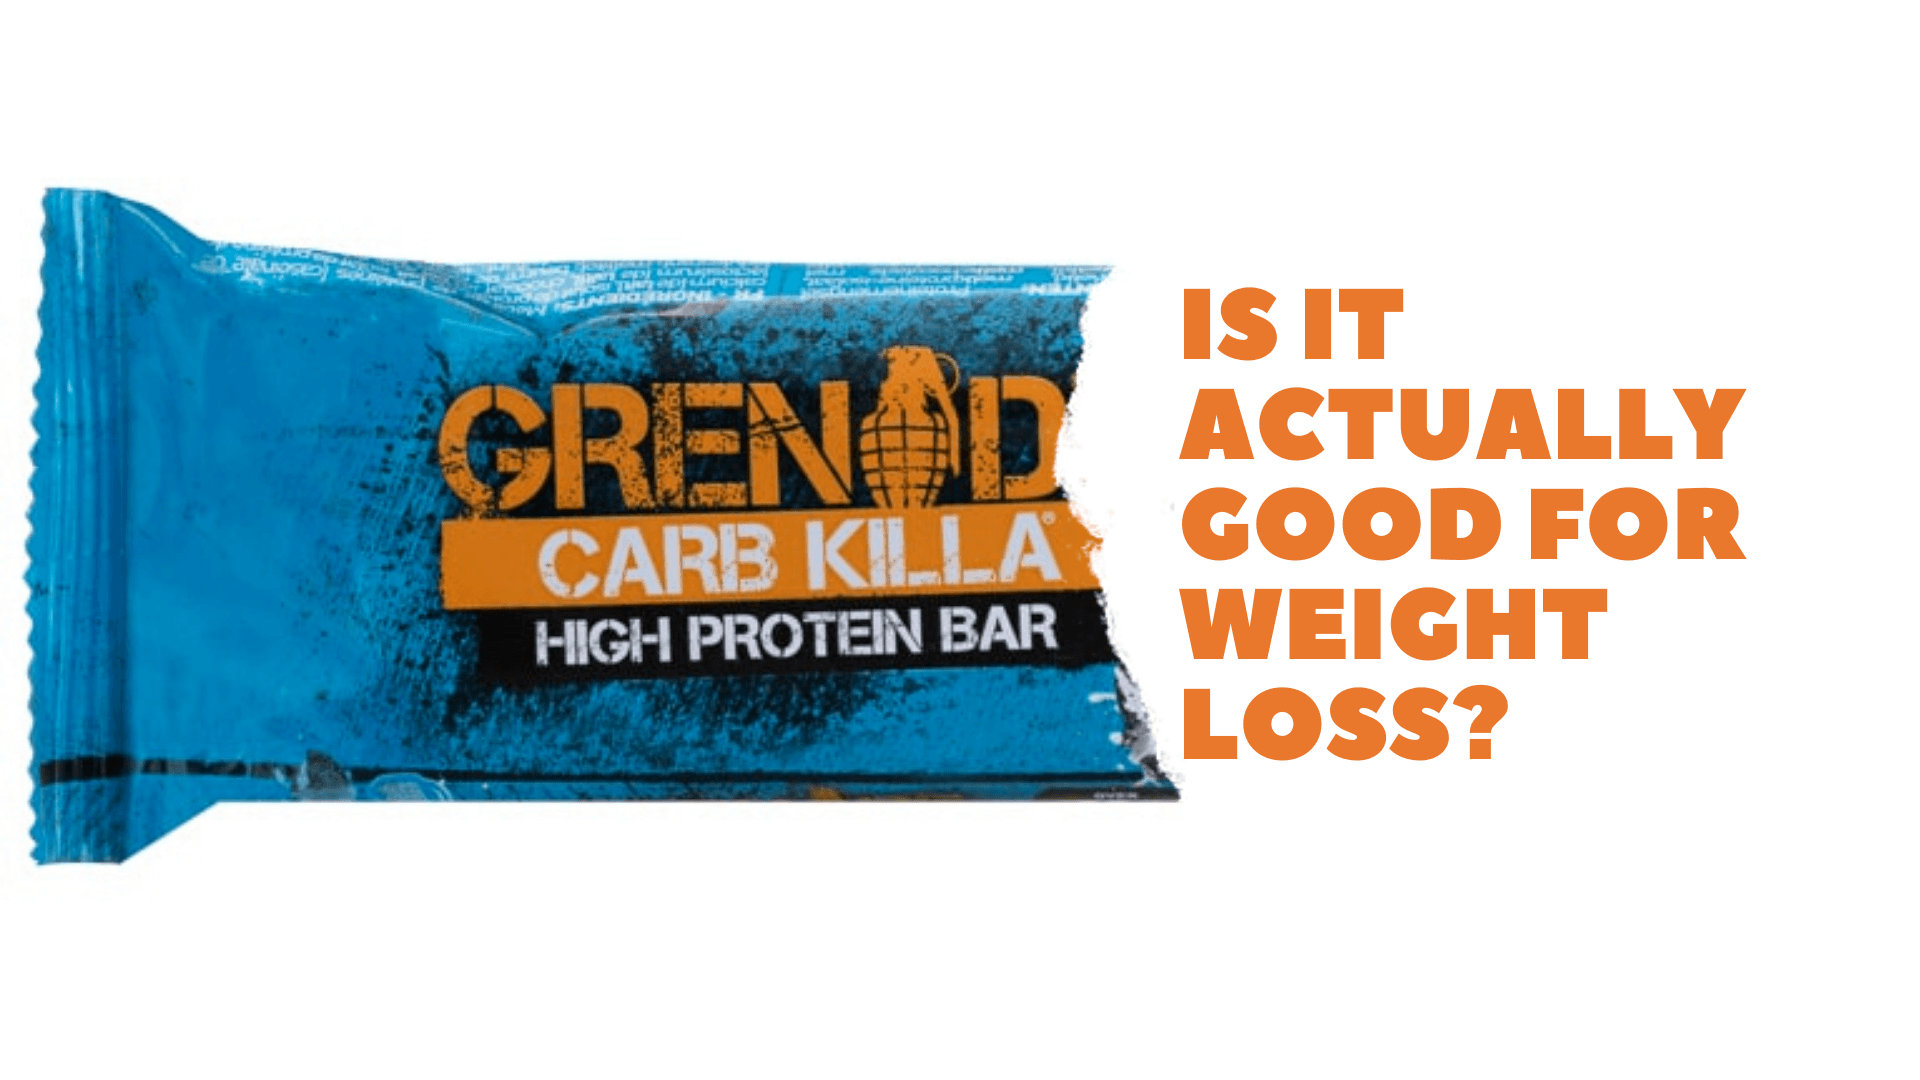 Carb Killa Protein Bar Review And When To Eat It To Get The Full Benefit